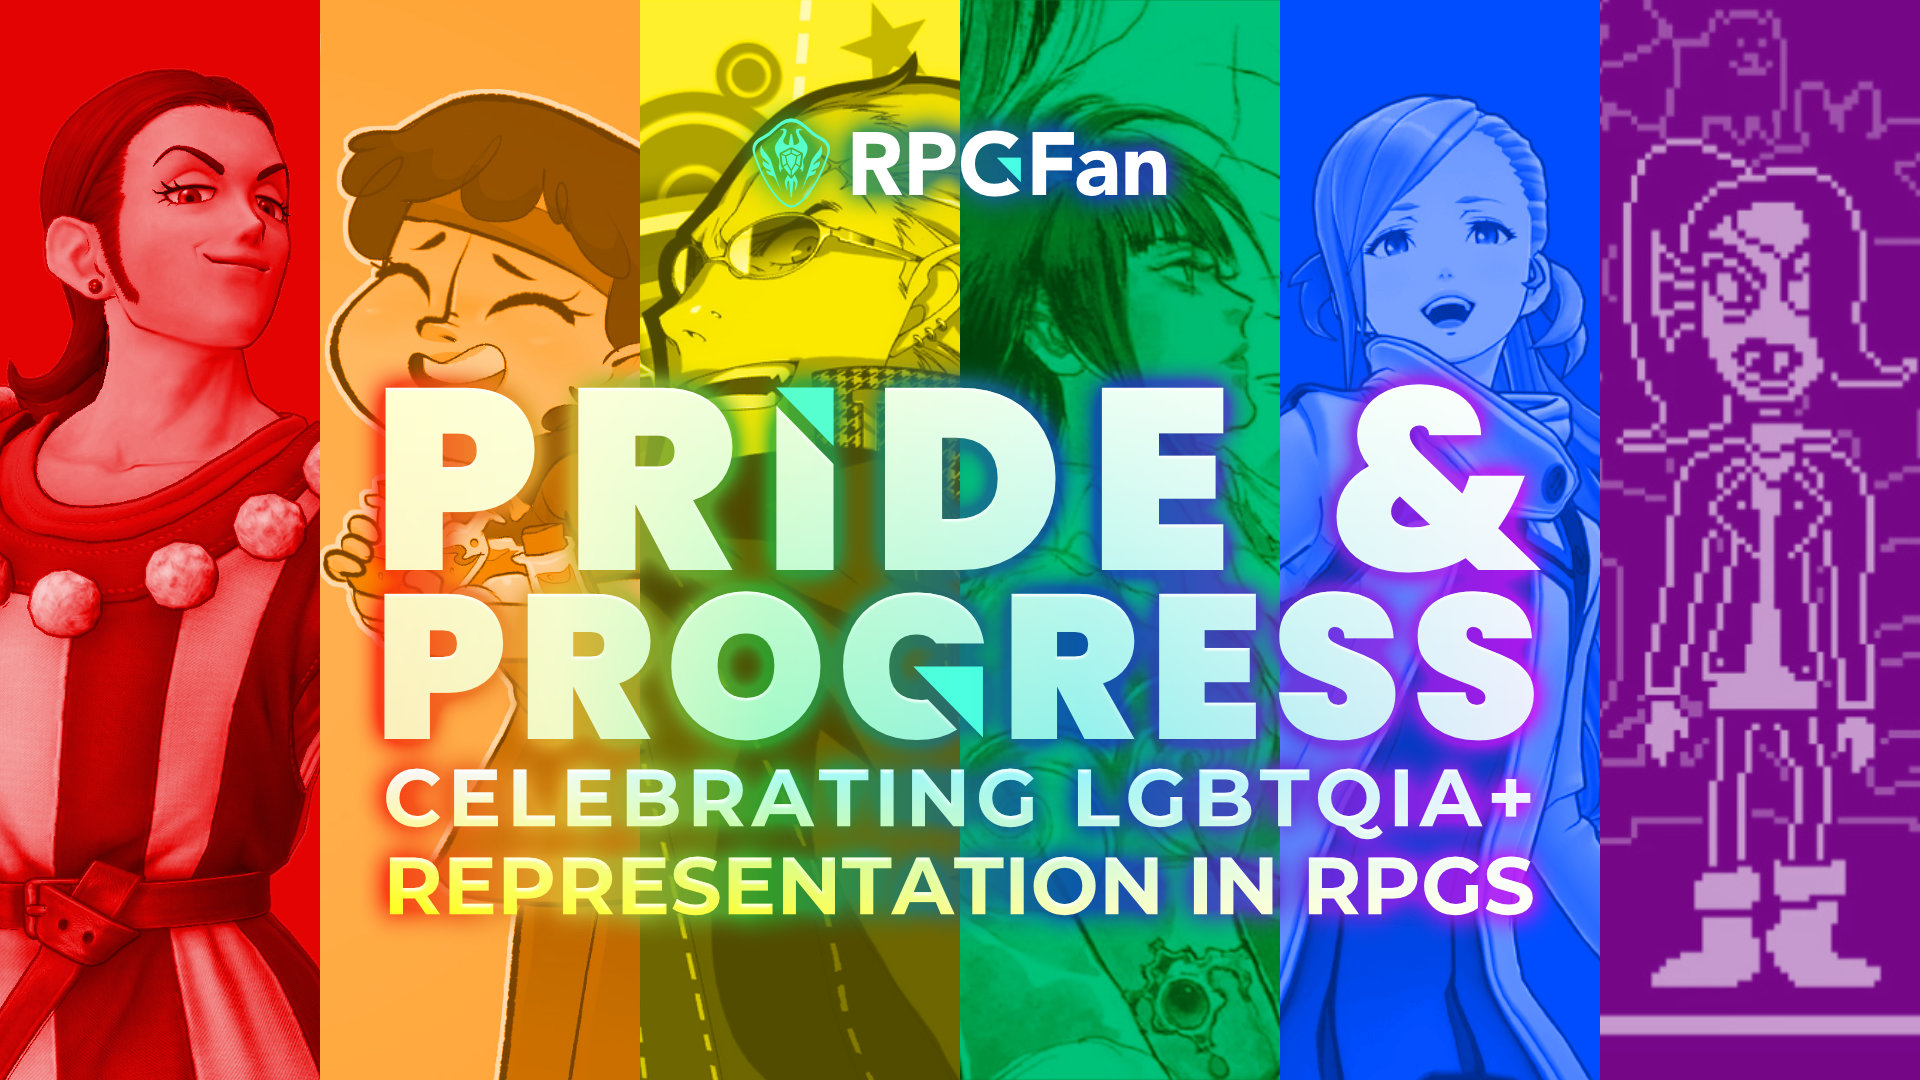 Pride & Progress: Celebrating LGBTQIA+ Representation in RPGs graphic featuring six characters on a rainbow background.